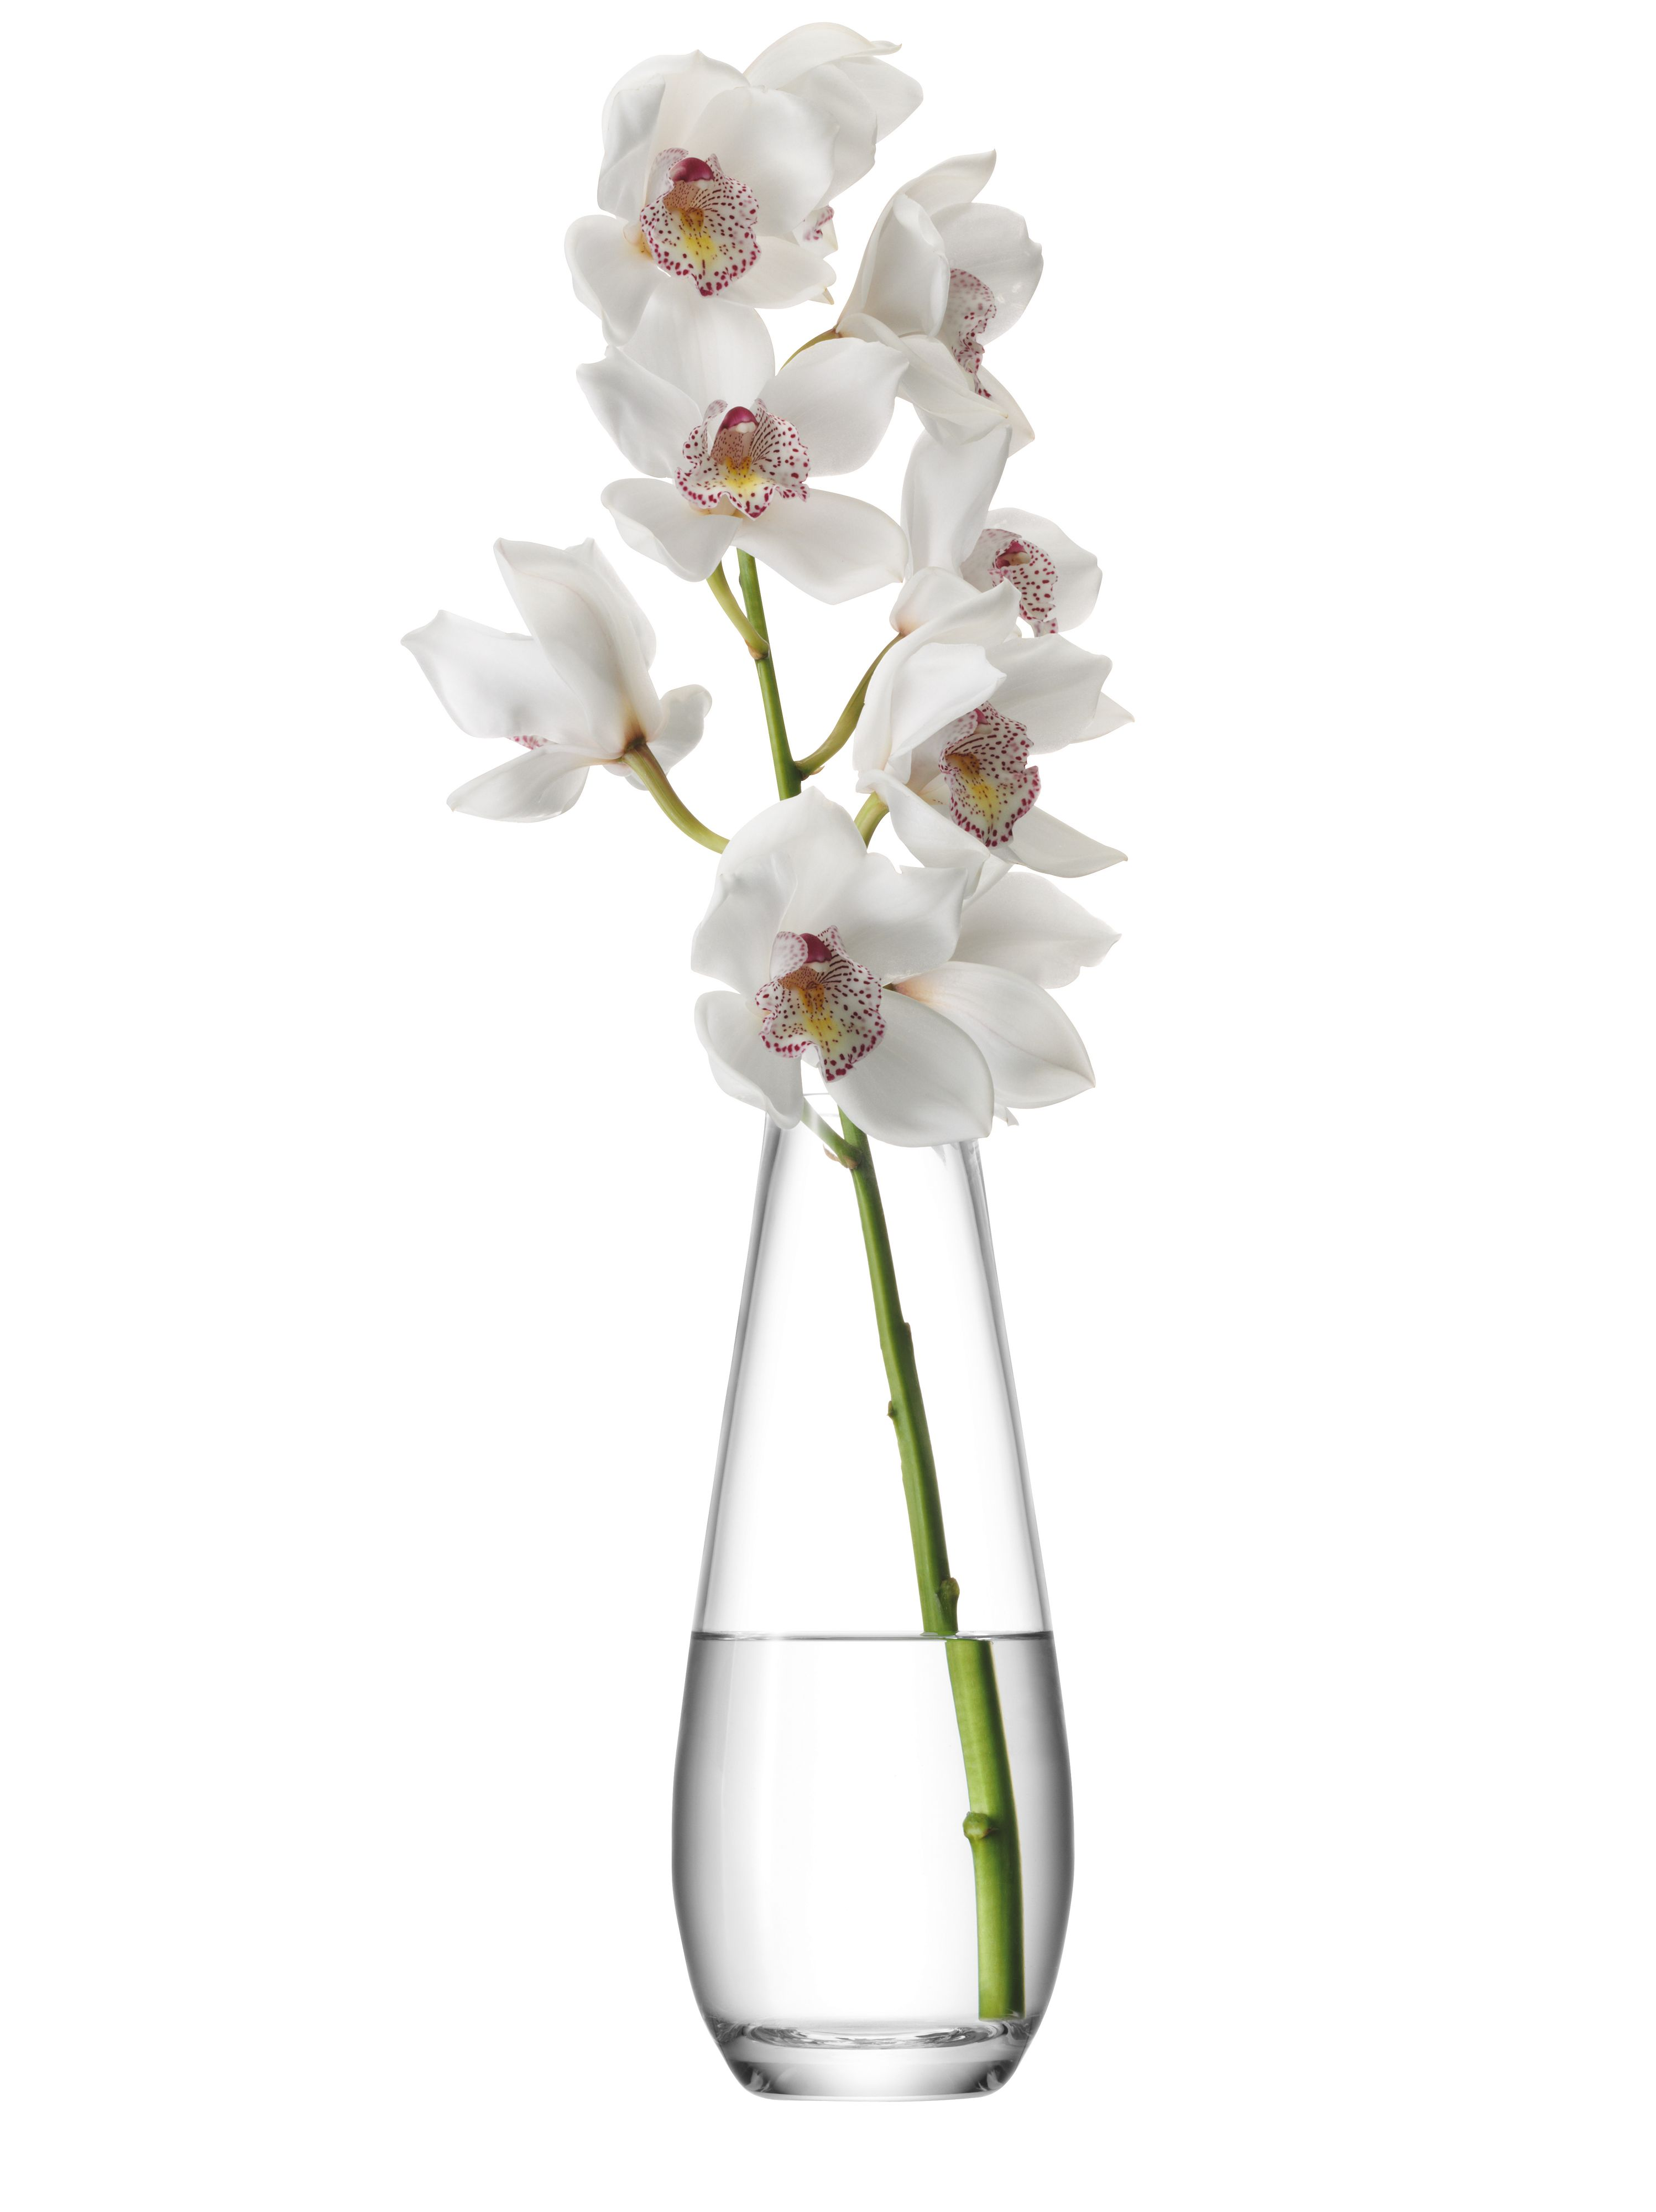 Tall stem vase, clear, 29cm